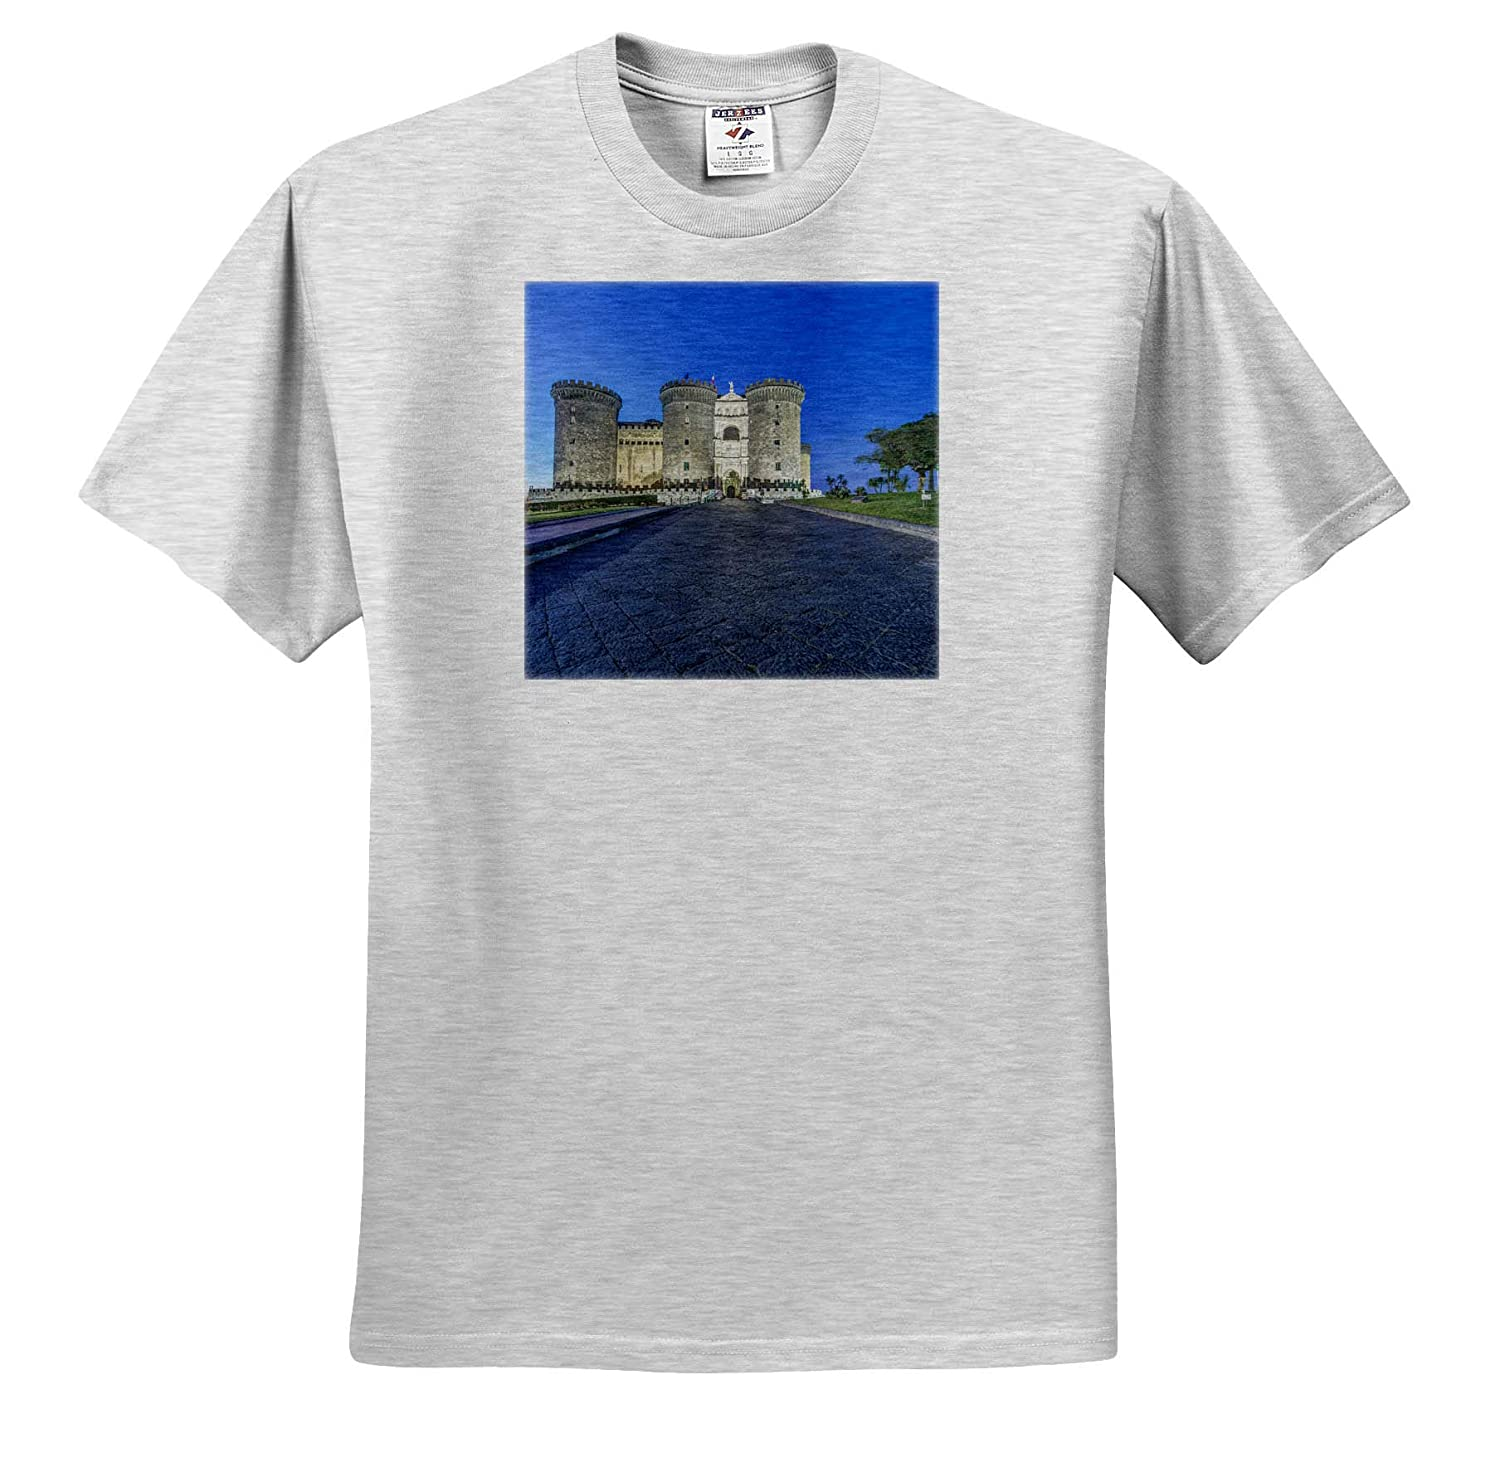 Adult T-Shirt XL Italy Castel Nuovo at Dawn Naples 3dRose Danita Delimont Naples ts/_313748 Europe